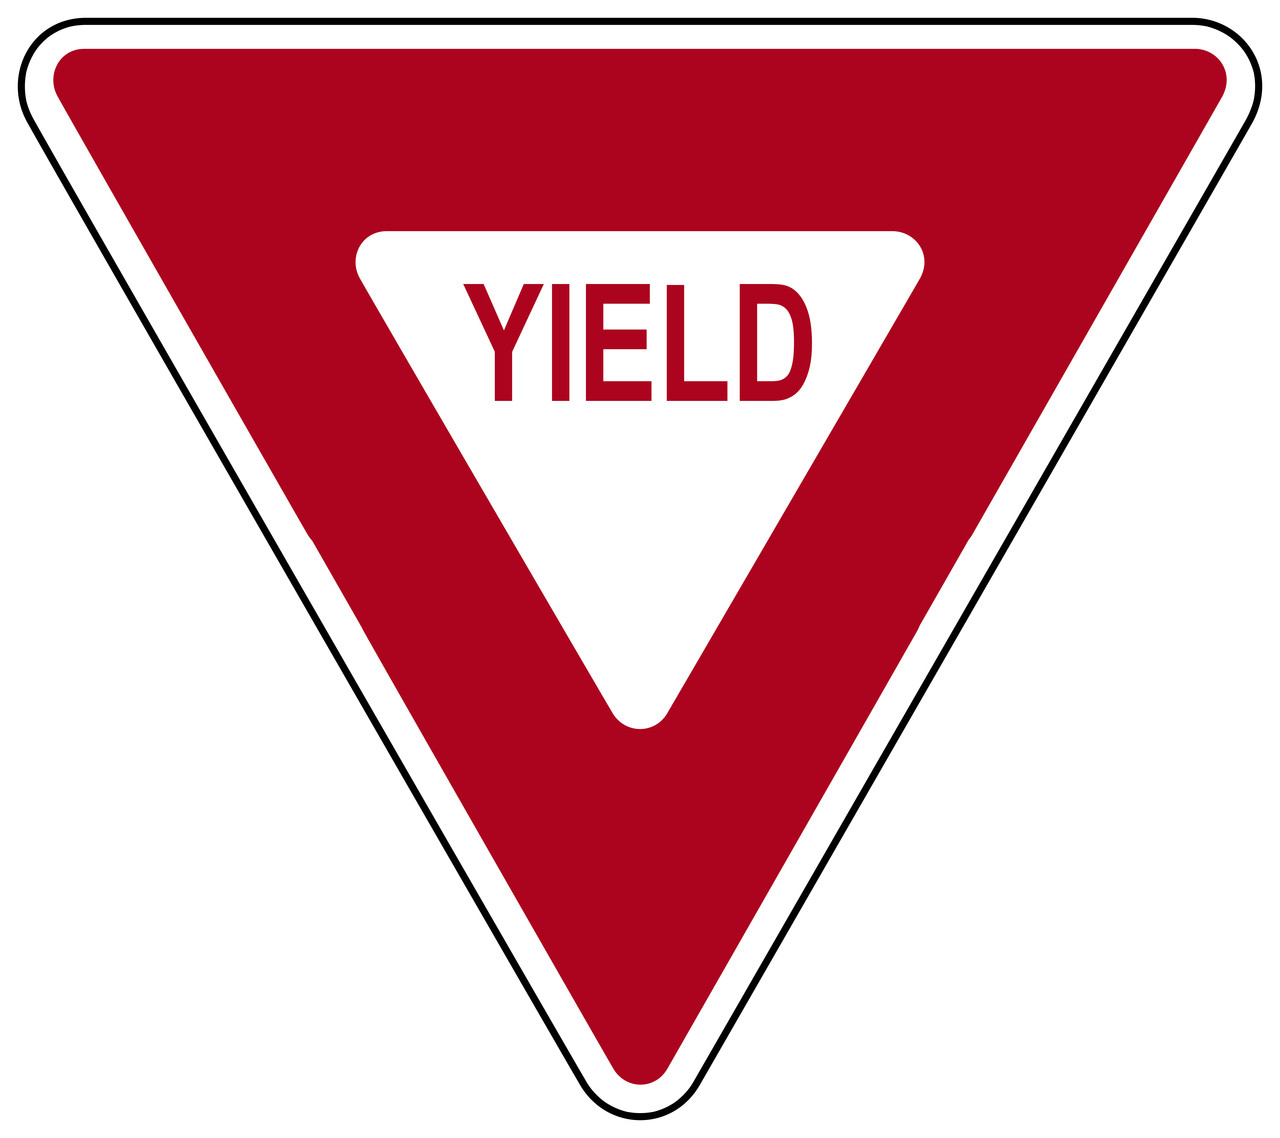 triangle yield sign red and white yield sign sign clip art vector sign clip art free images